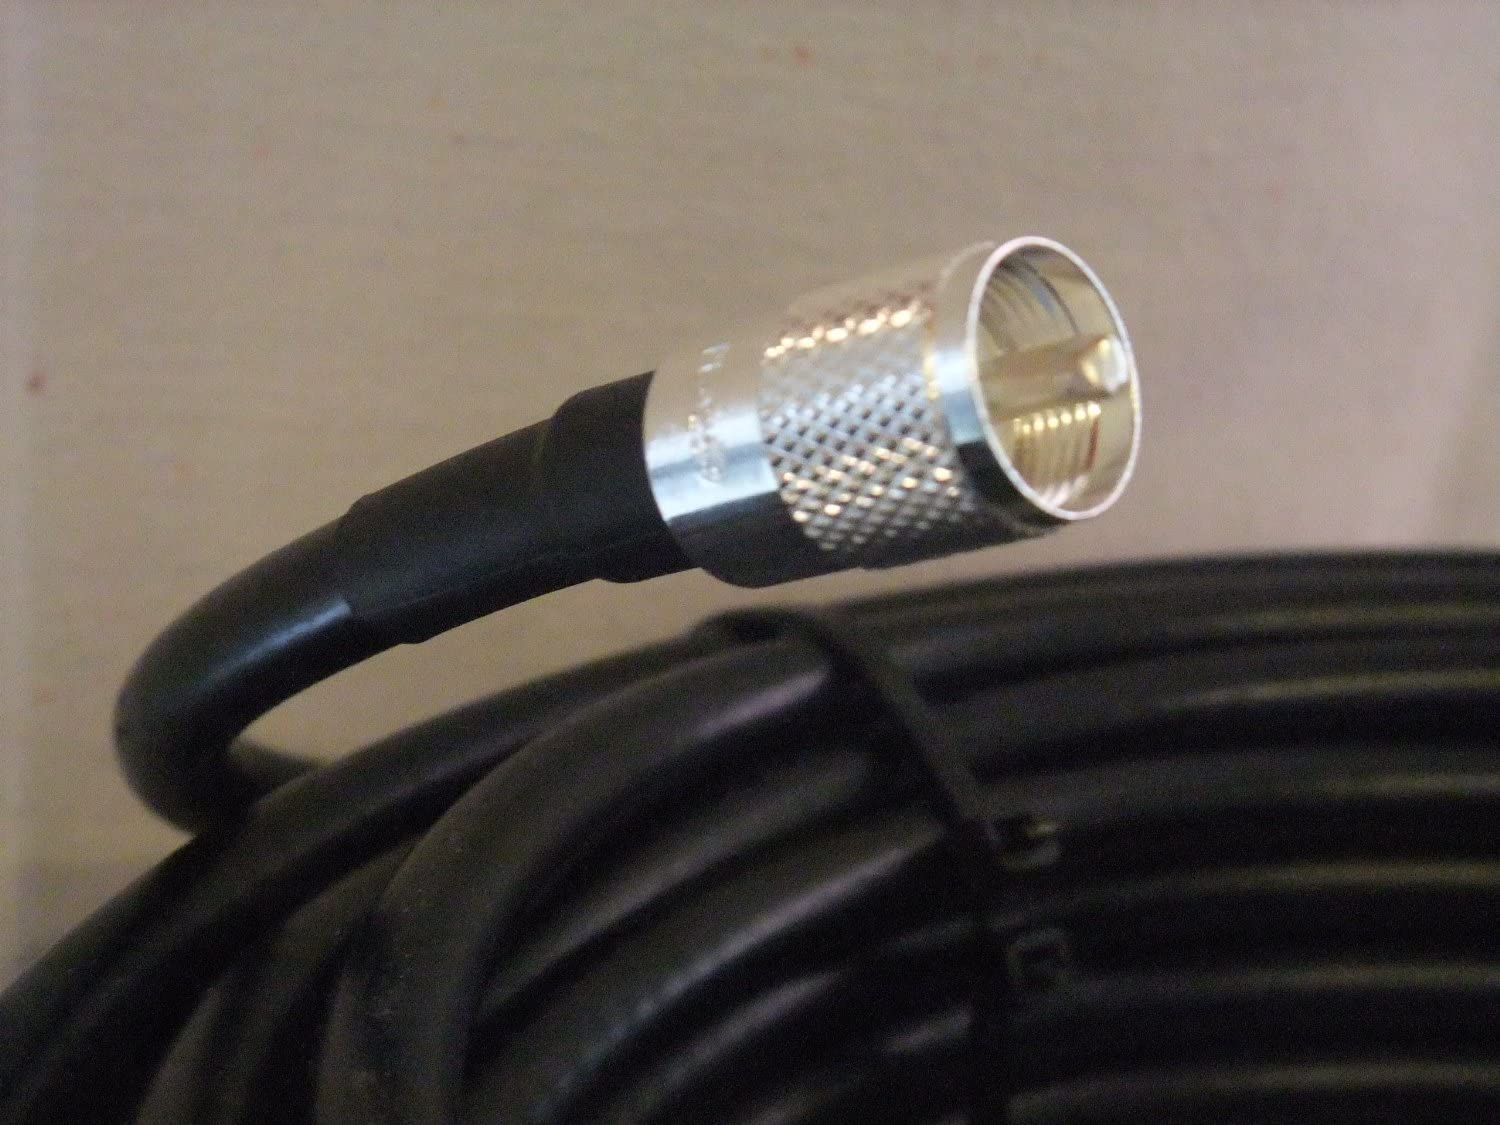 MPD Digital RG8U-UHF-125 Made in The USA RG-8U Non Contaminating RG8u UL Listed Coaxial Antenna Cable RG213 Copper Braid HF VHF RF with PL-259 UHF Male Connectors 125 ft